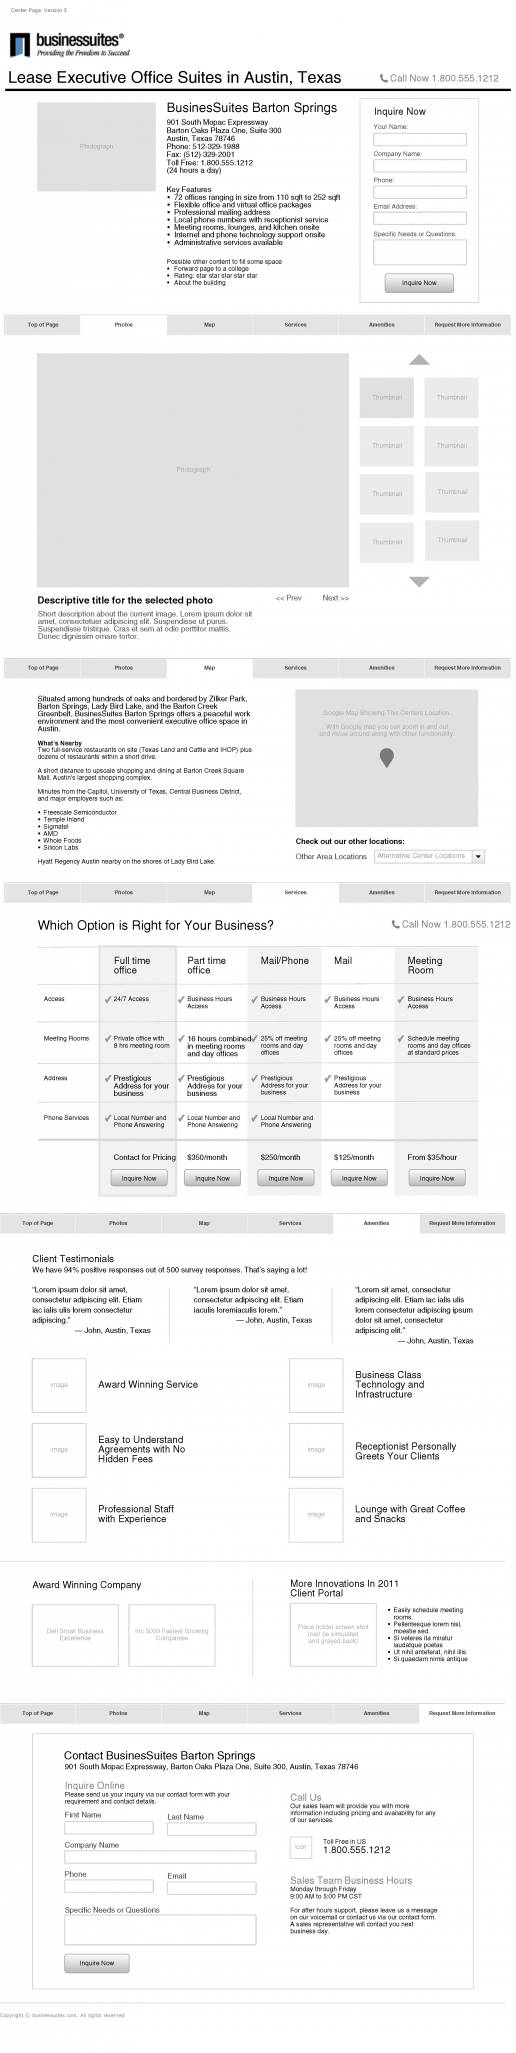 BusinesSuites 2011 Website Redesign Initial Subpage Wireframe Alternatives